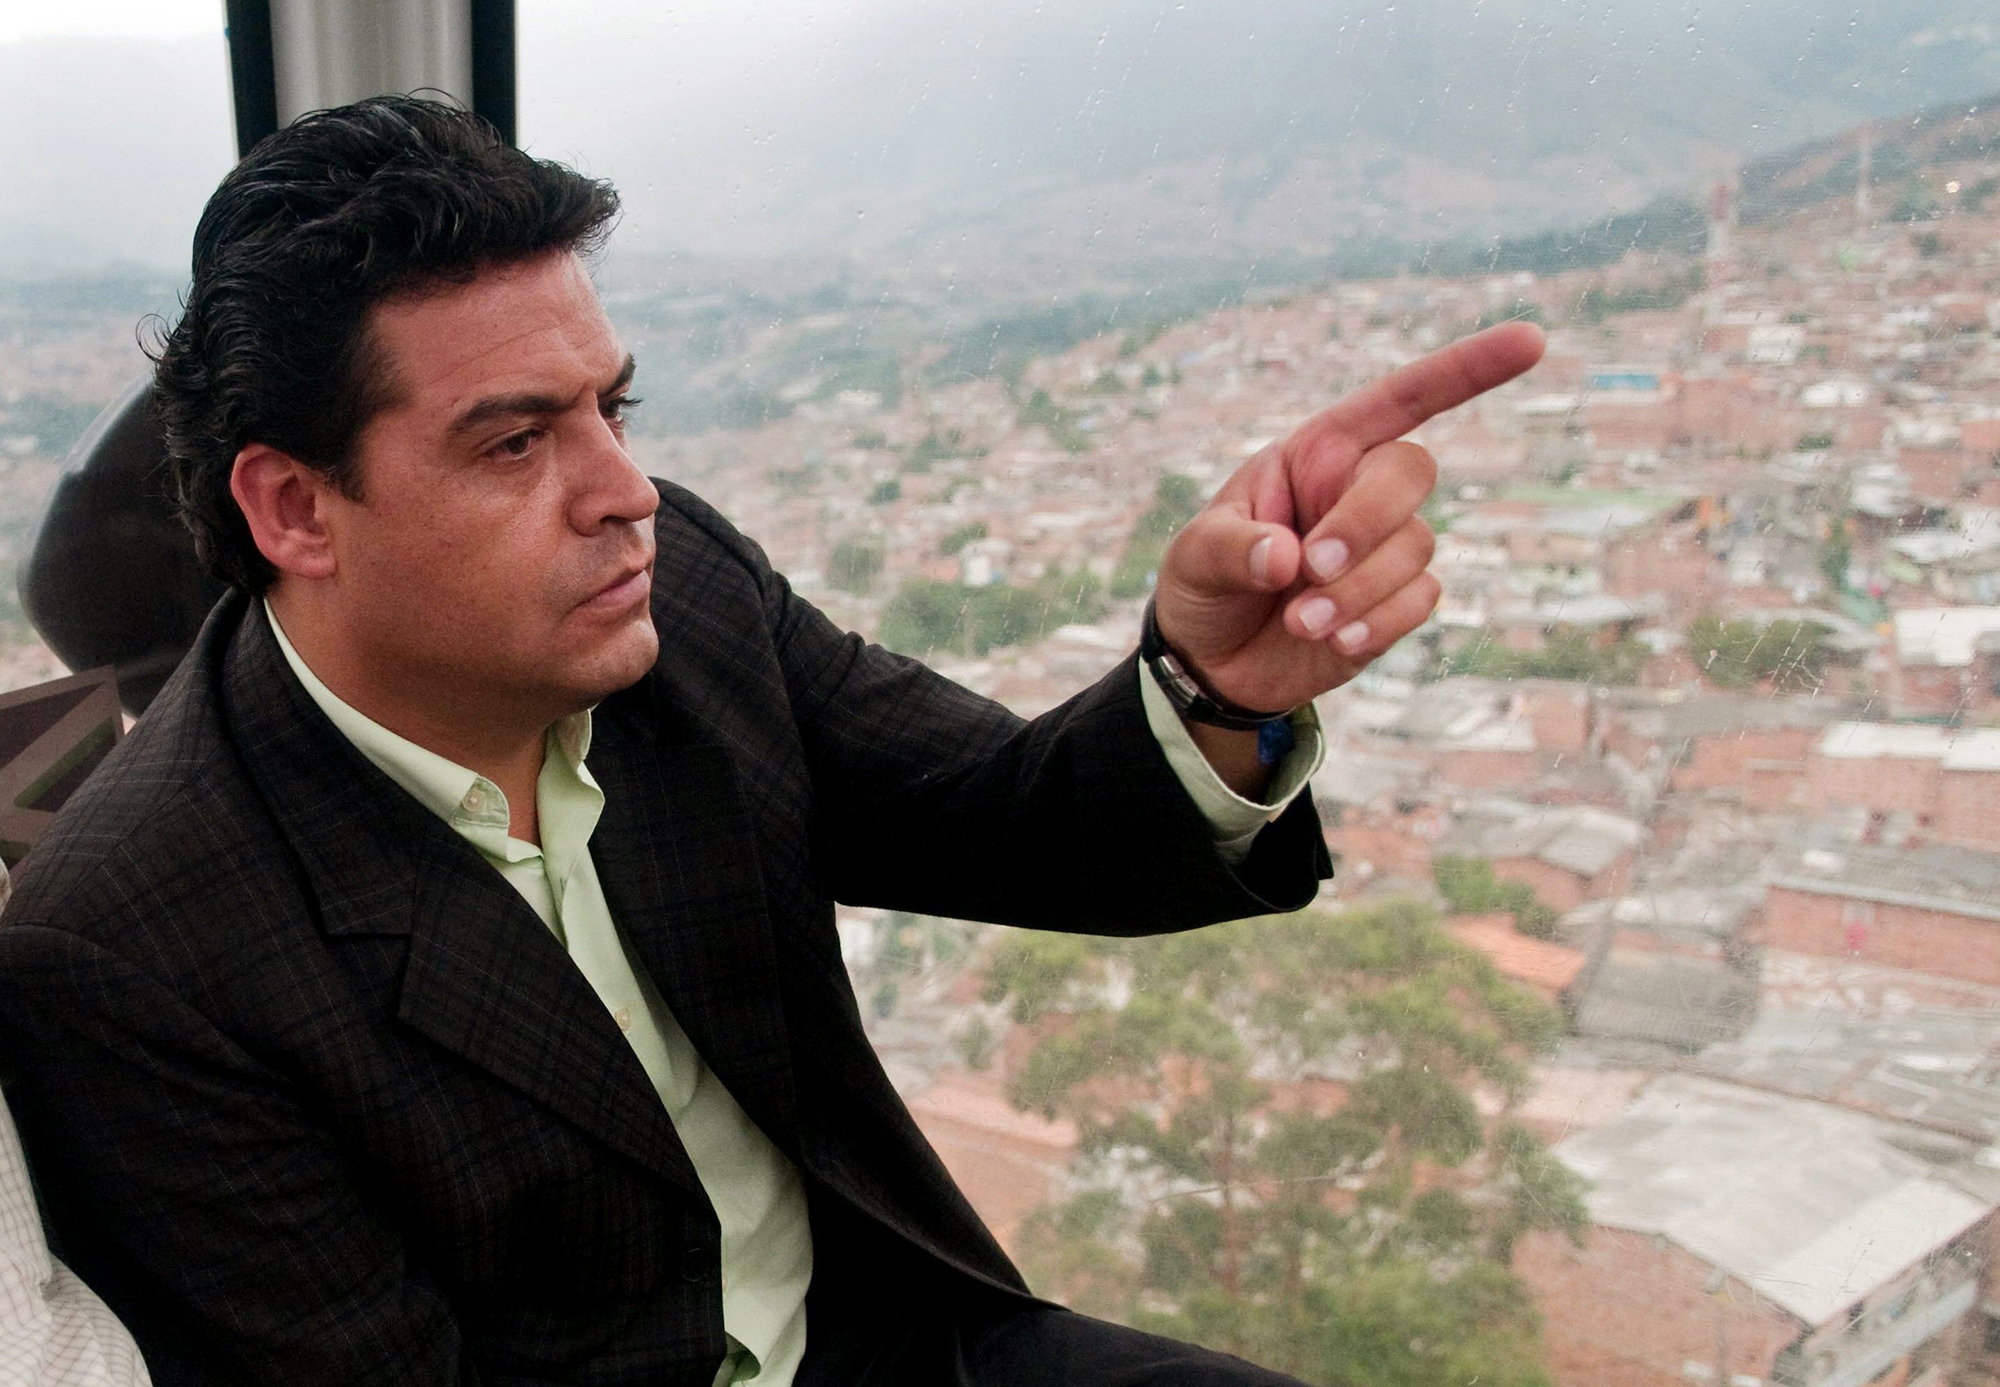 Elected Mayor of La Paz Luis Revilla Herrero during a visit in the city of Medellin, Colombia on May 3, 2010.